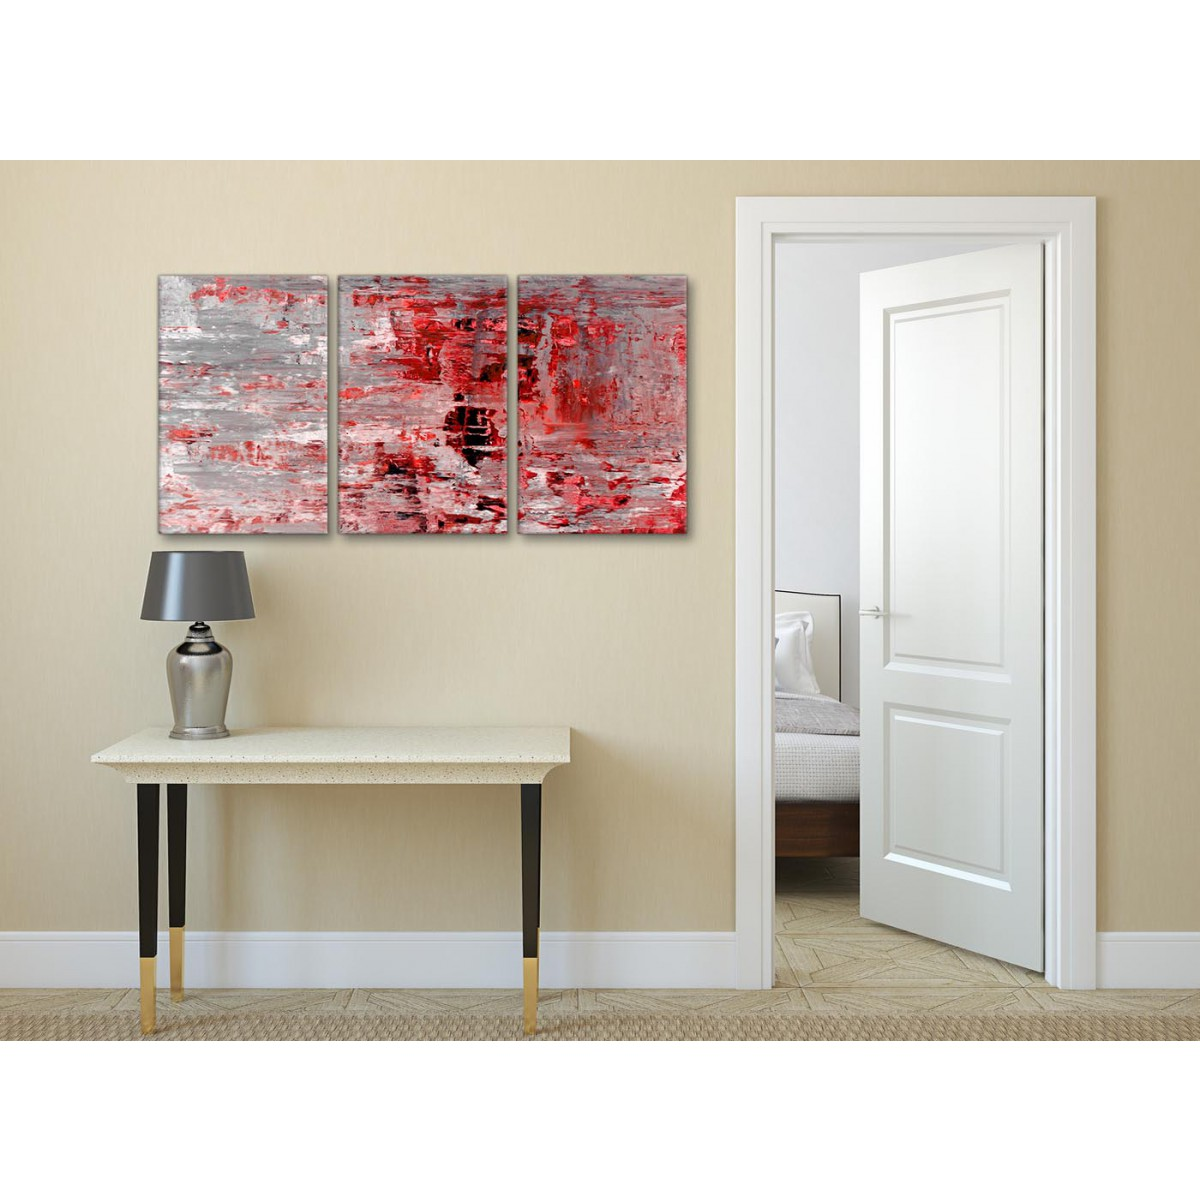 3 Piece Red Grey Painting Living Room Canvas Wall Art Decor